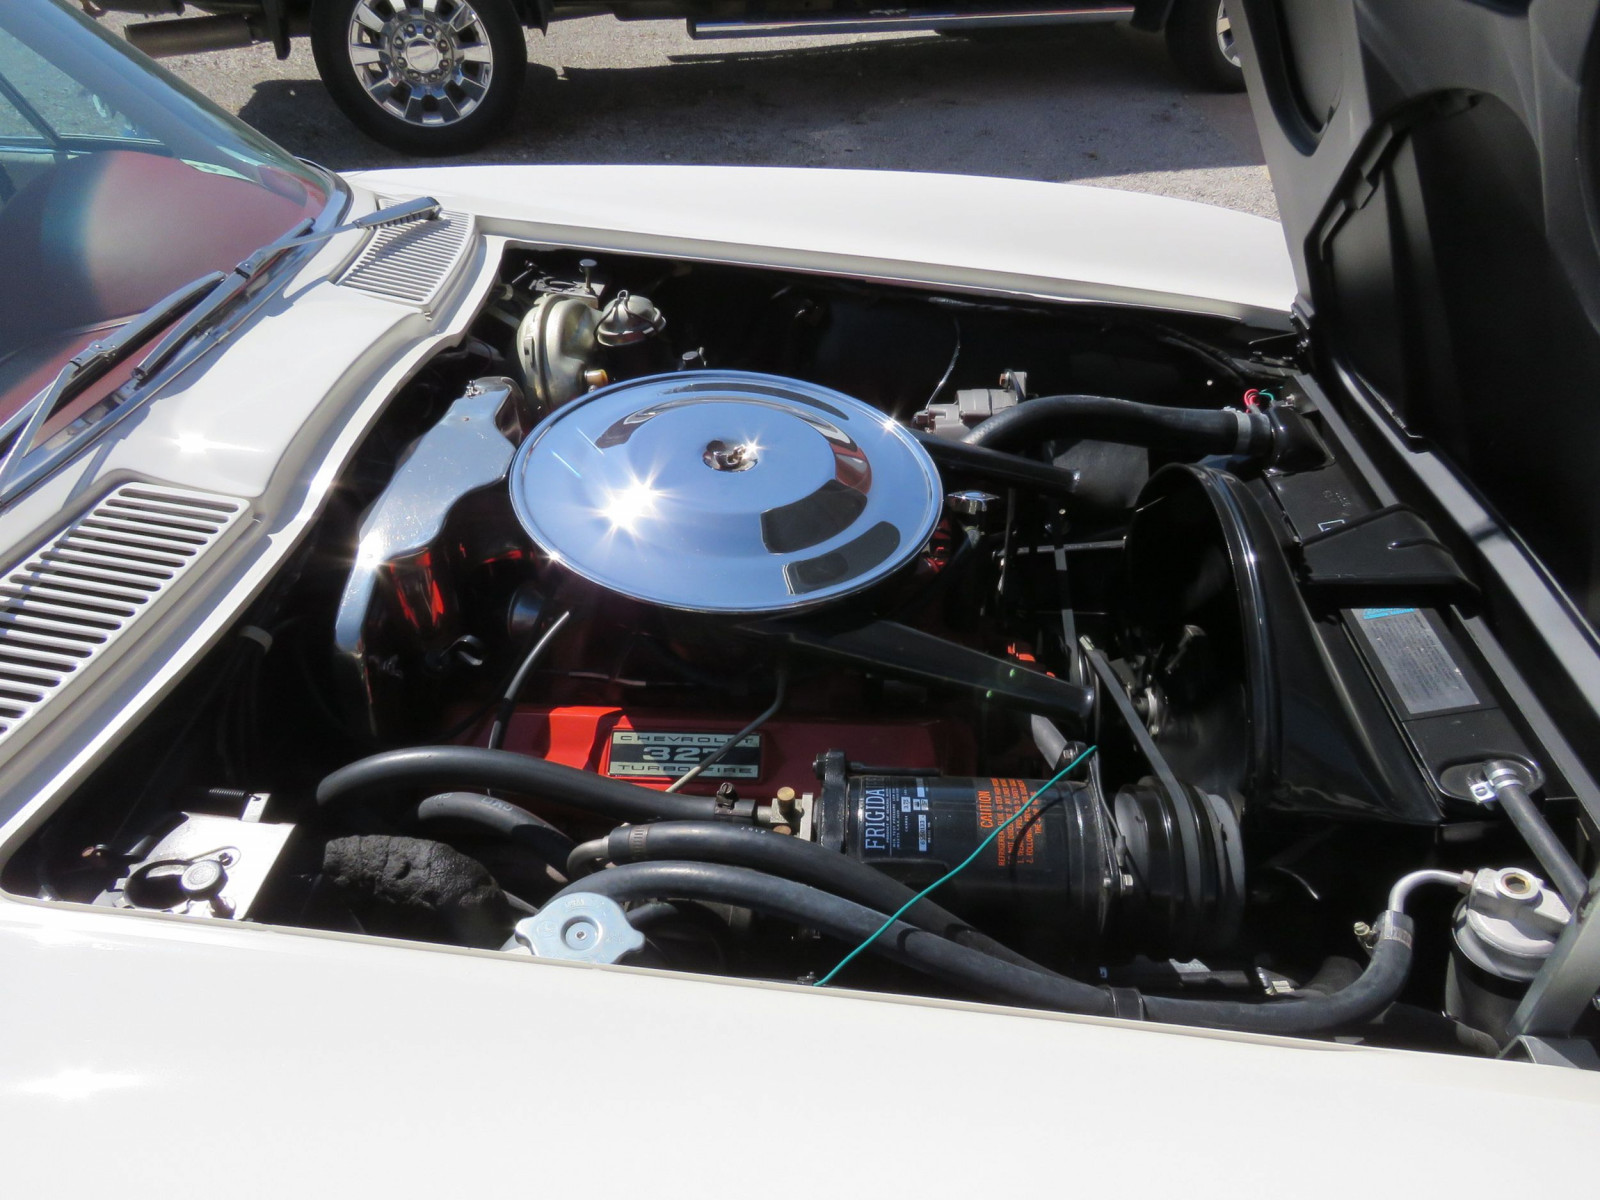 Beautiful 1964 Chevrolet Corvette Sting Ray Coupe - Image 14